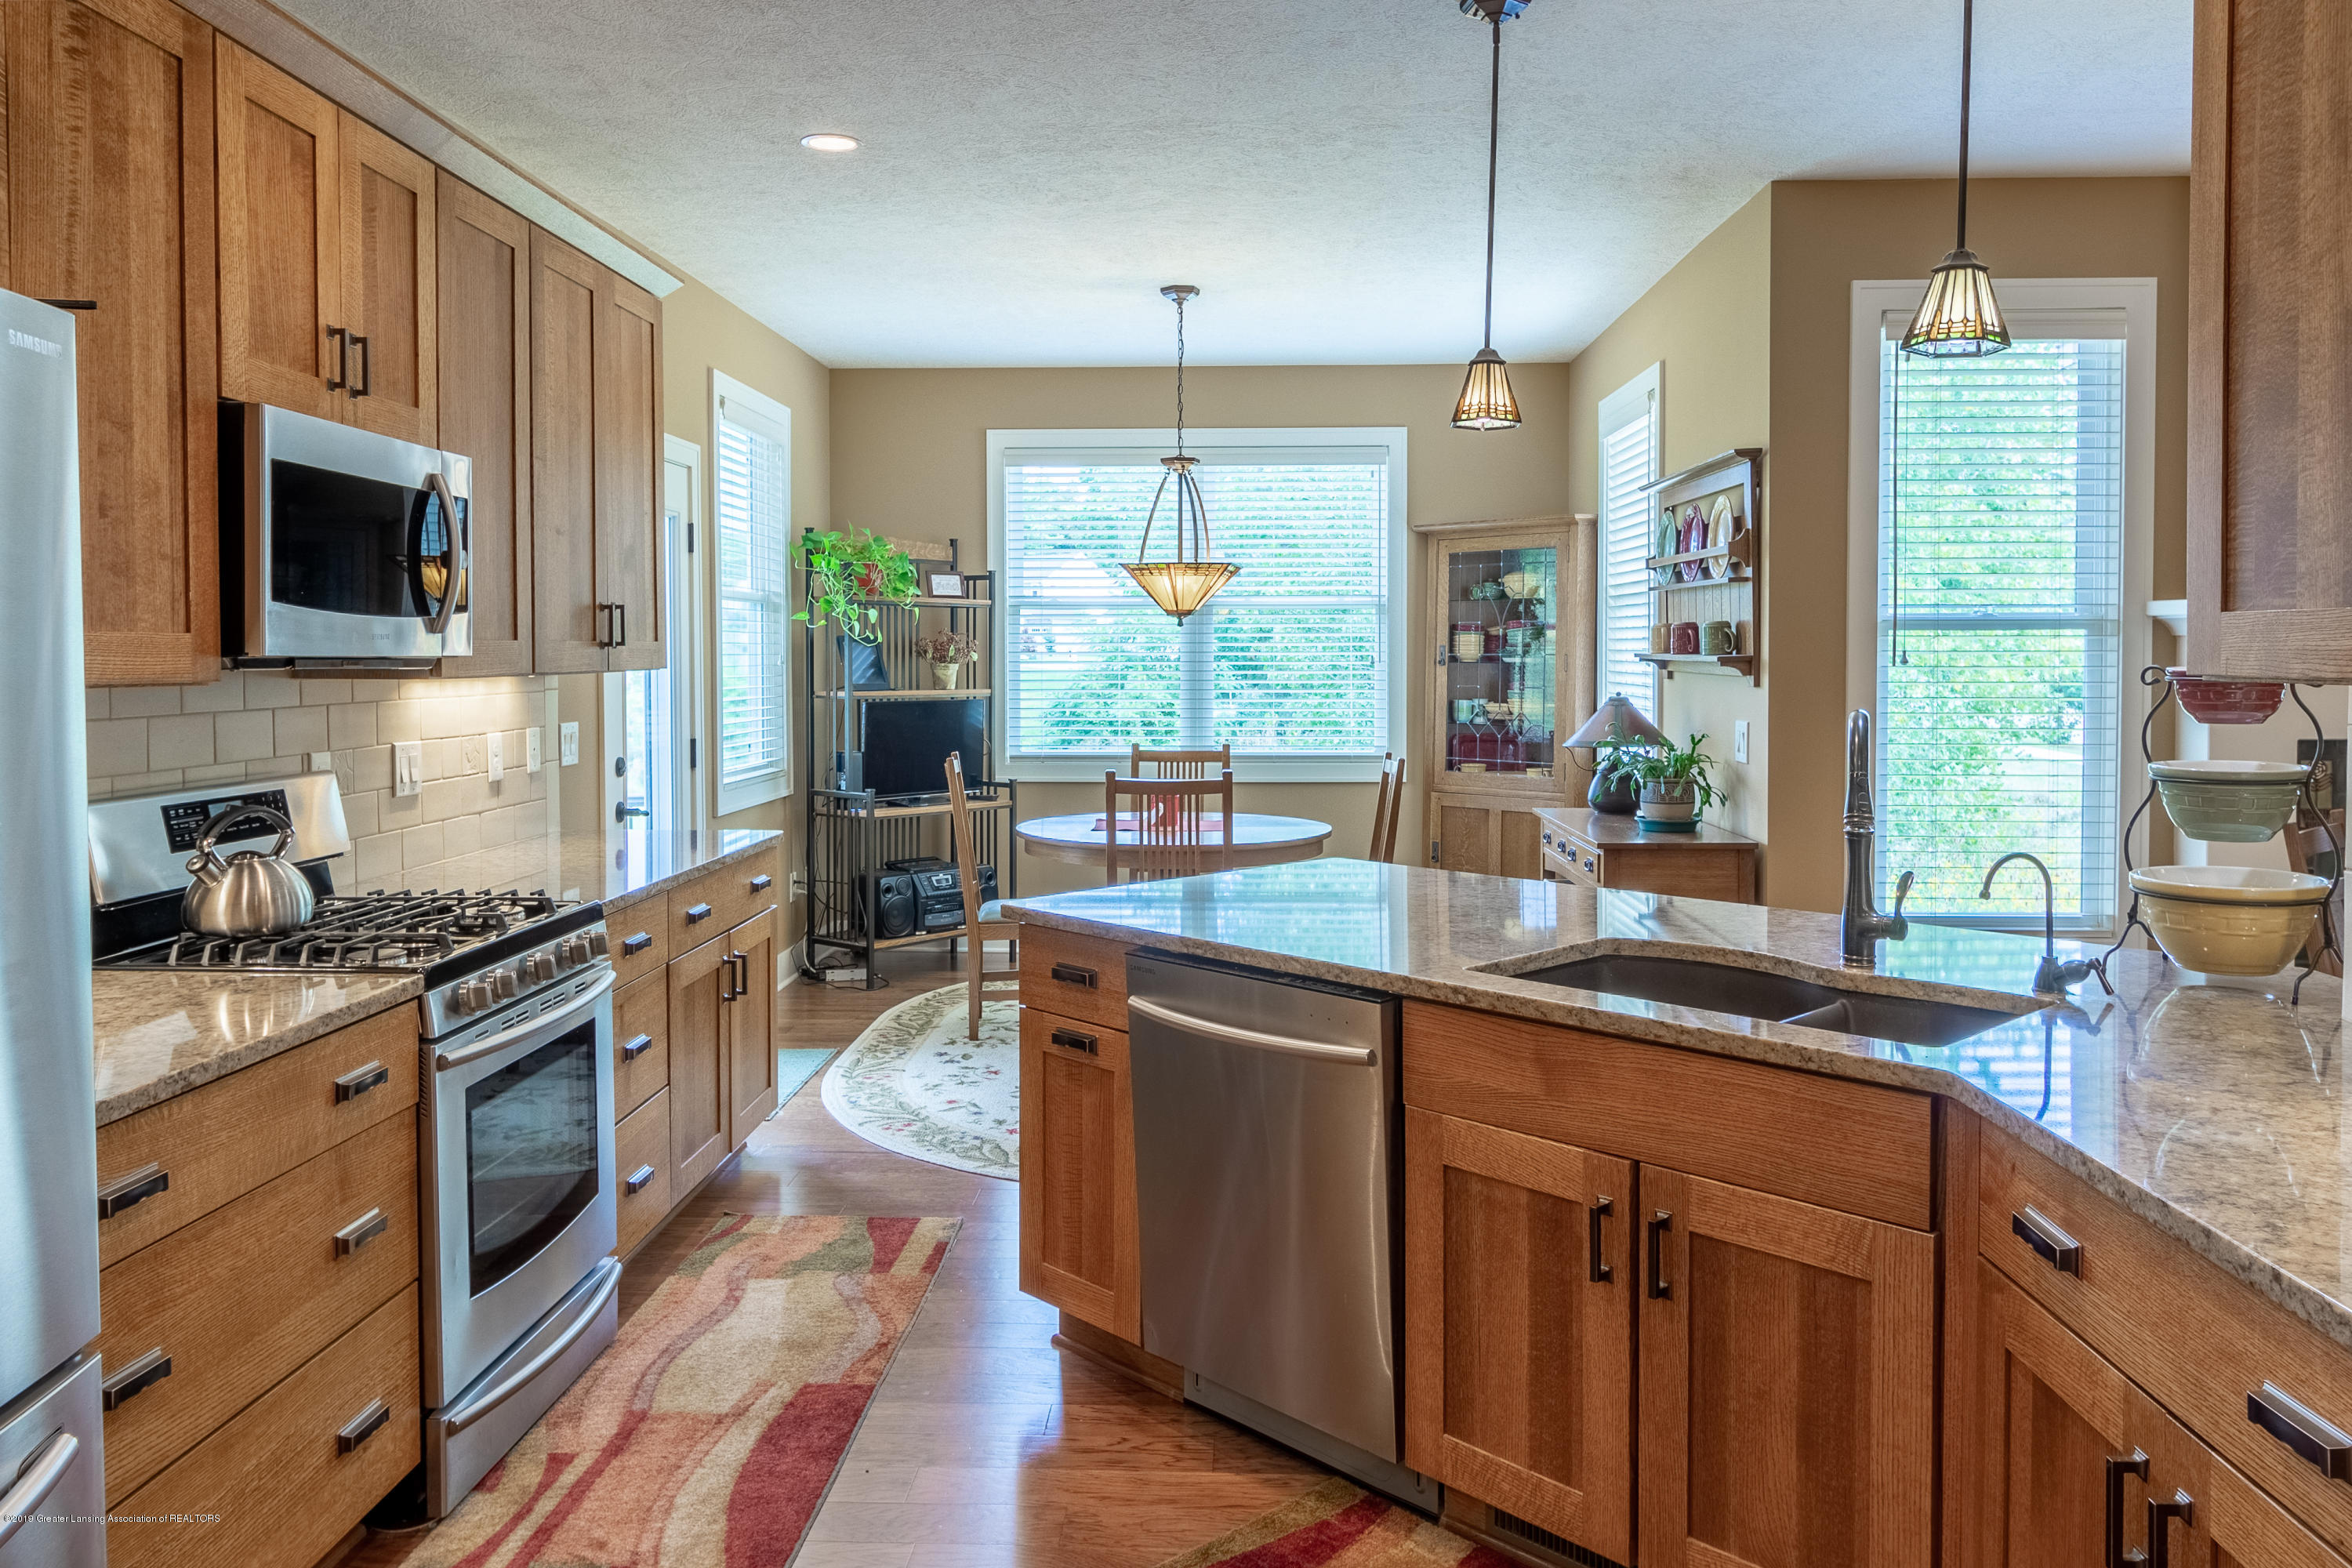 4134 E Benca Way - Kitchen and Dining Area - 35